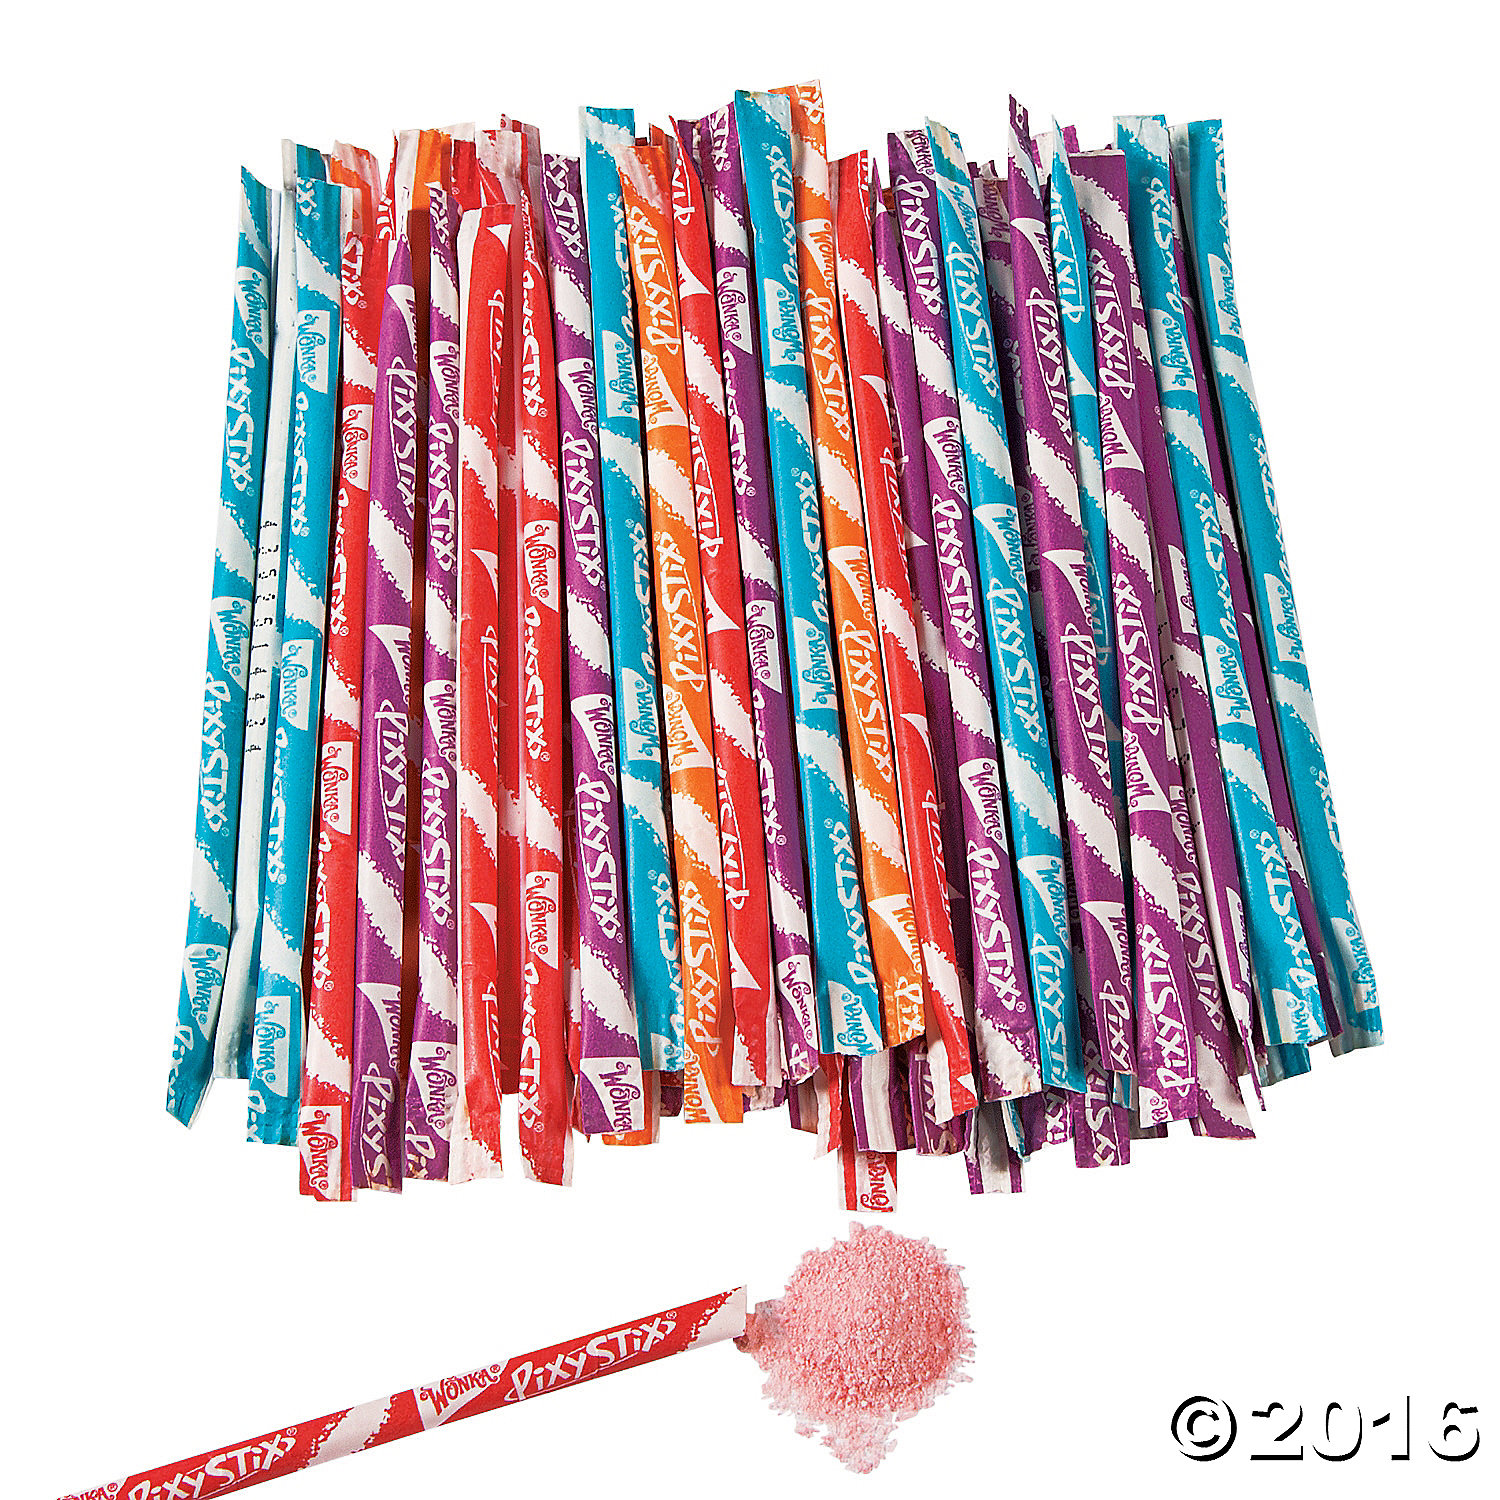 Bulk Pixy Stix 144 Pack Party Supplies Canada Open A Party